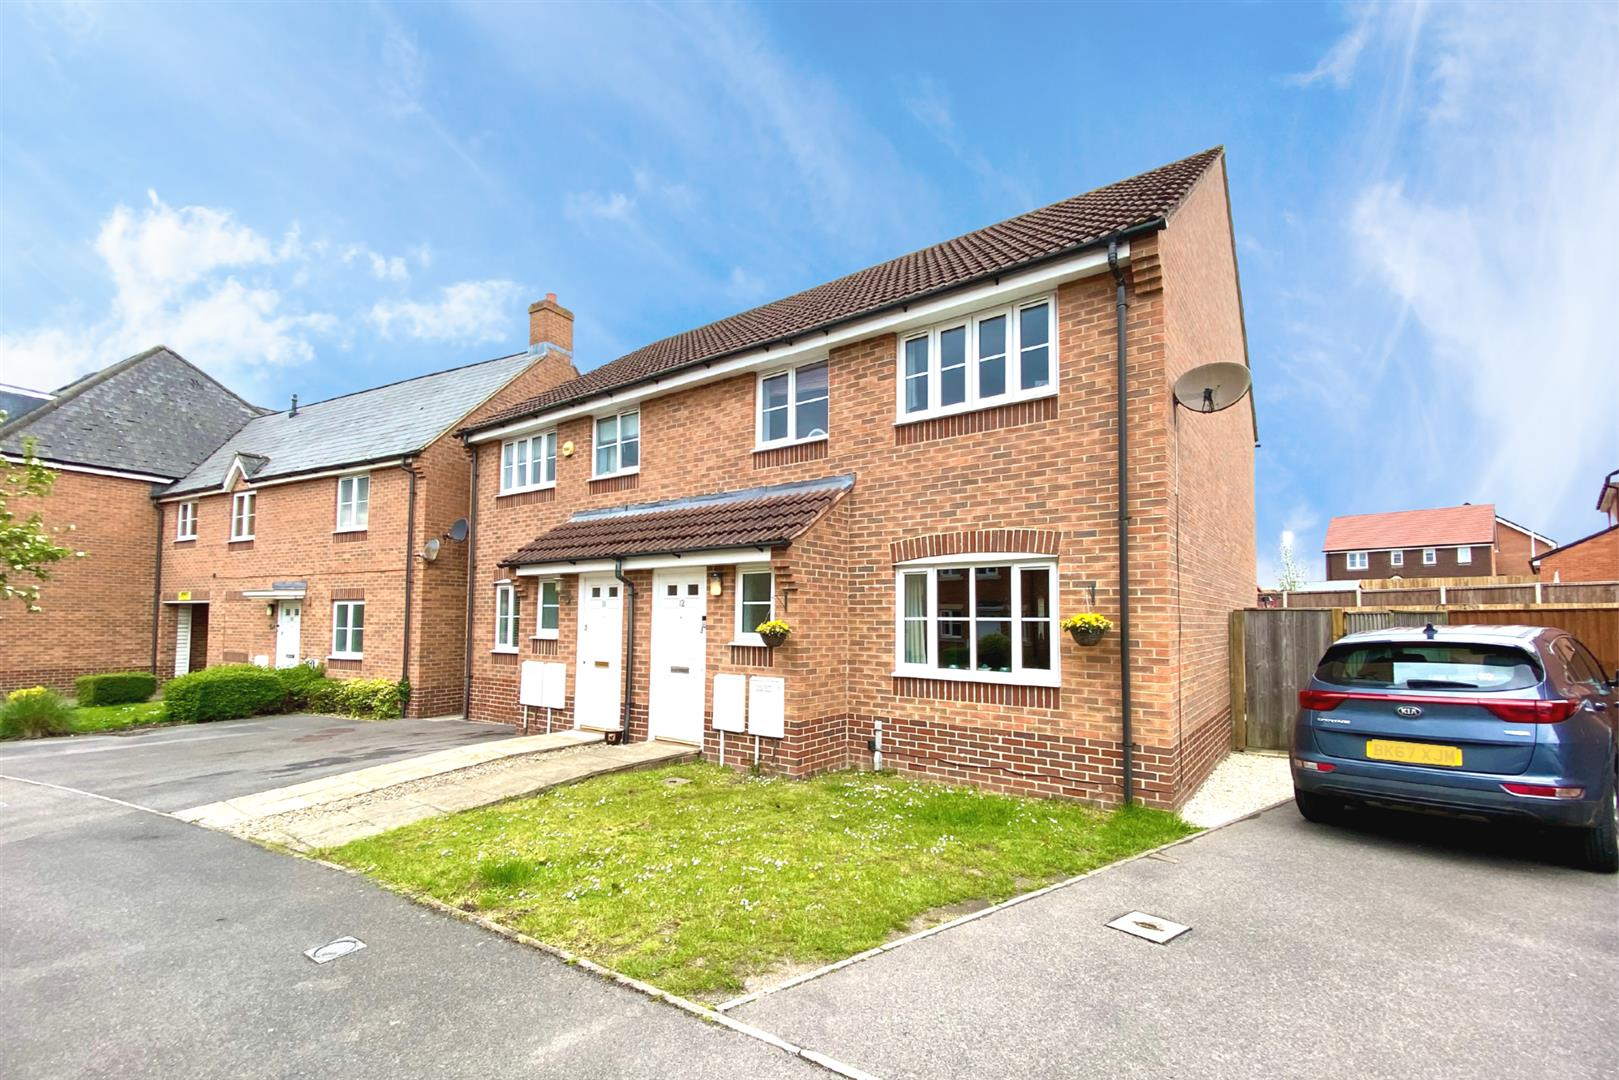 3 bed semi-detached for sale in Shinfield, RG2